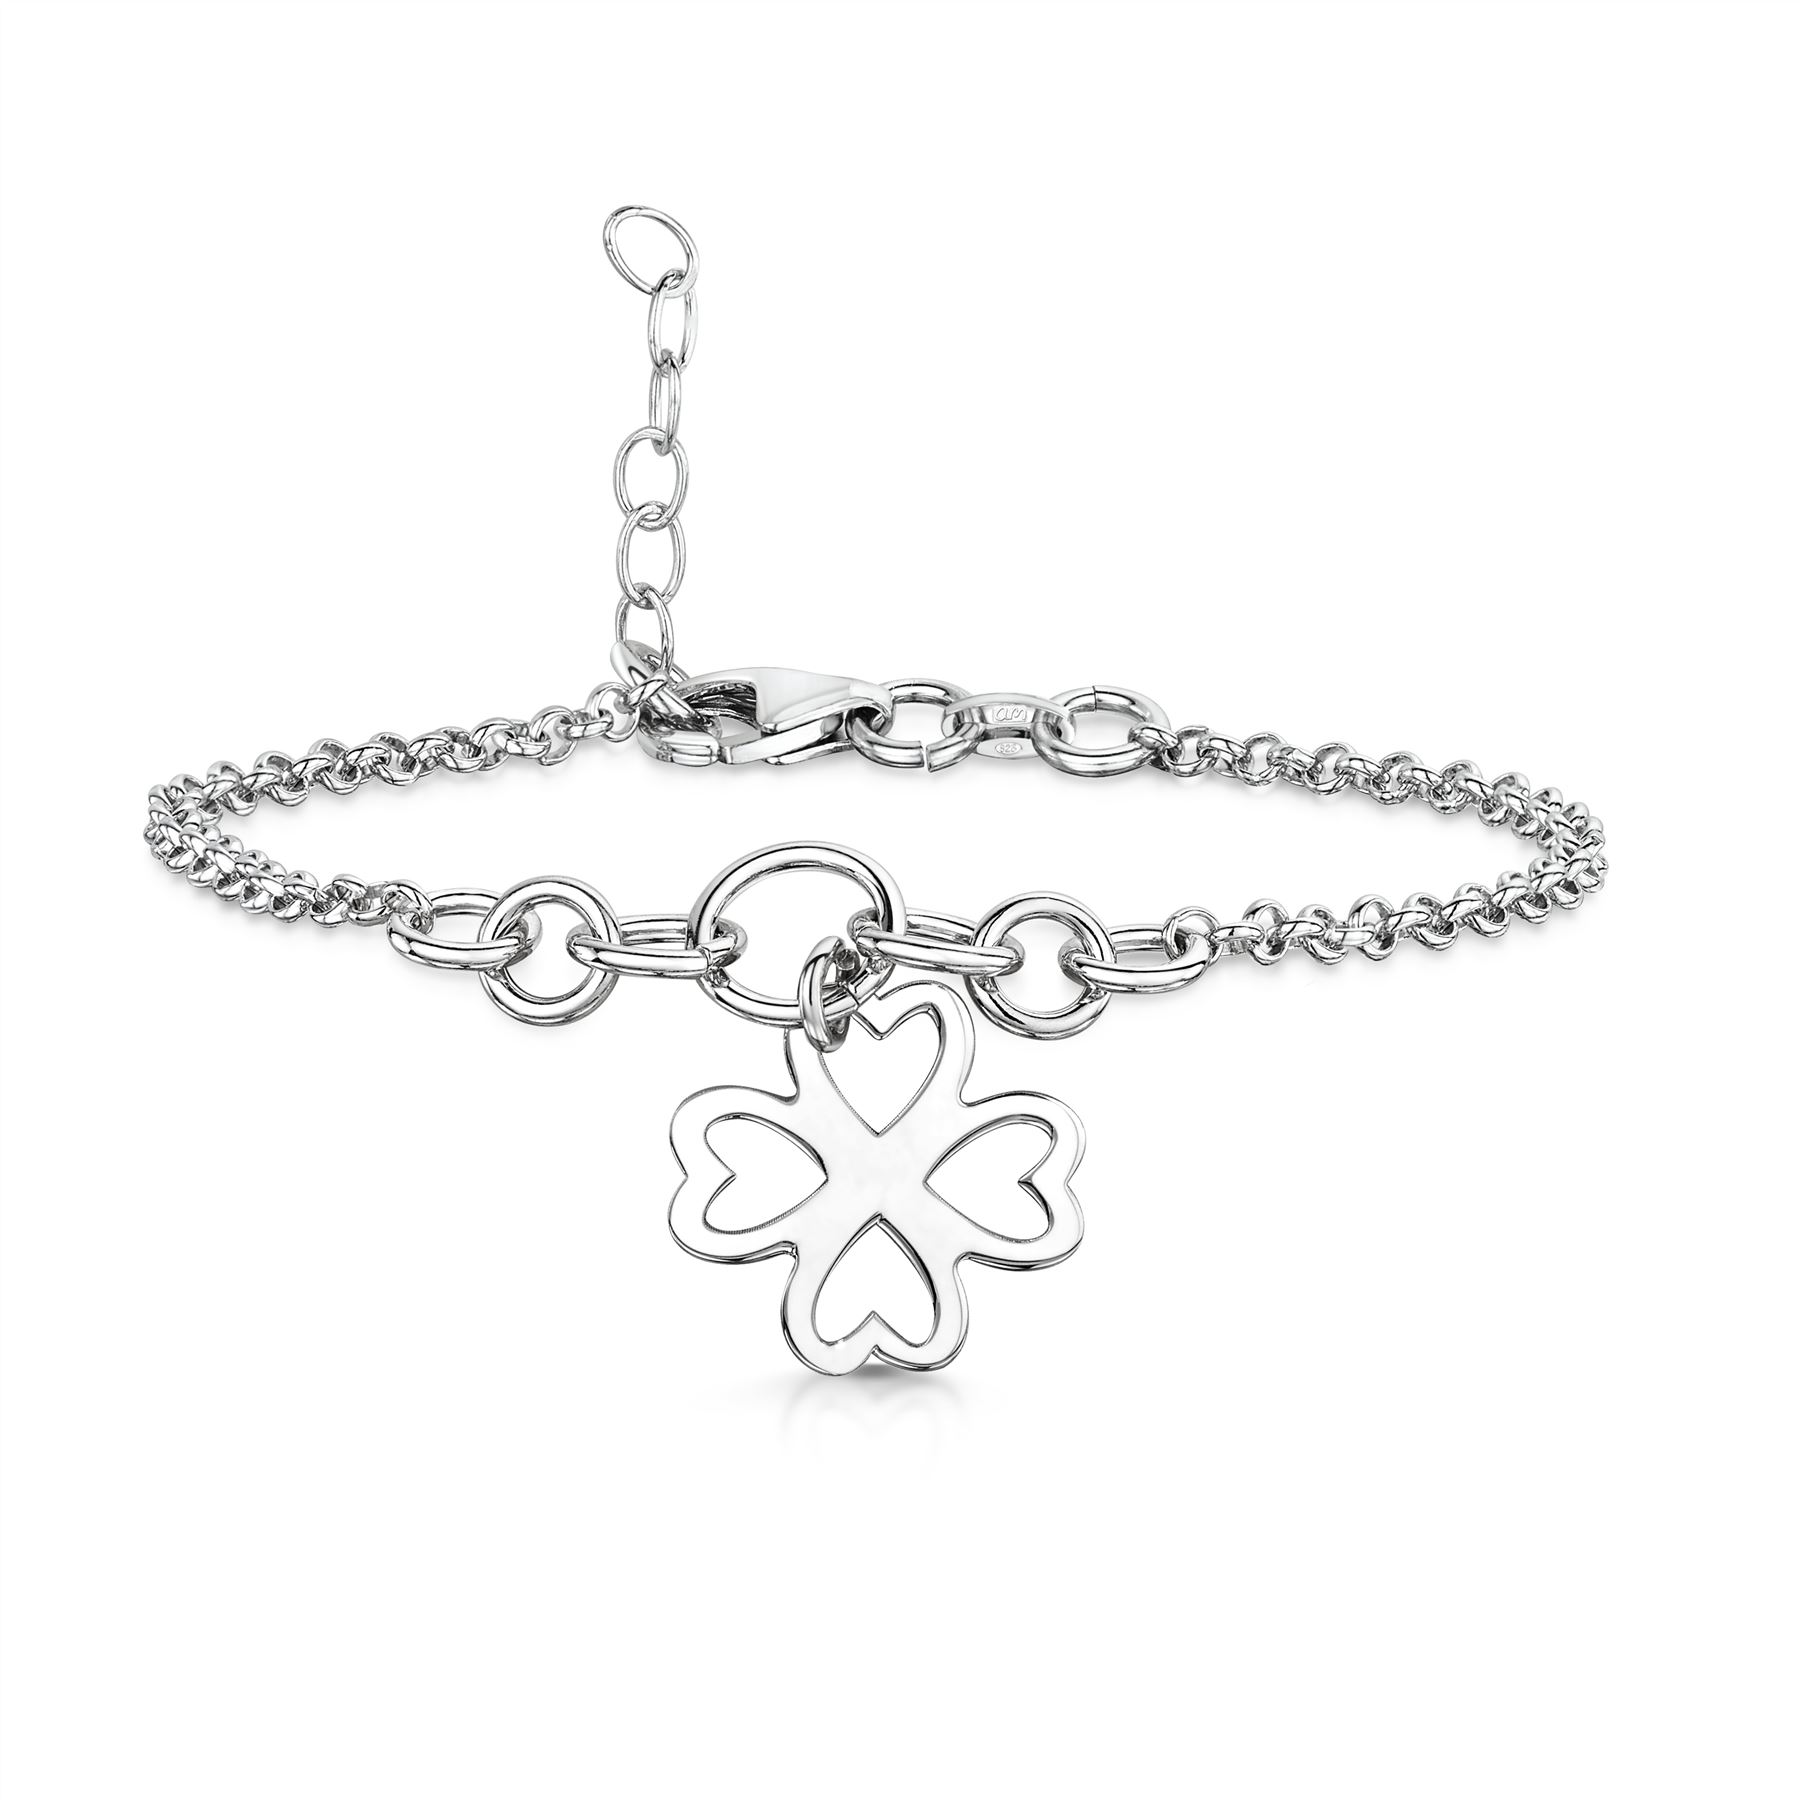 Amberta-Jewelry-925-Sterling-Silver-Adjustable-Anklet-for-Women-Made-in-Italy miniature 57